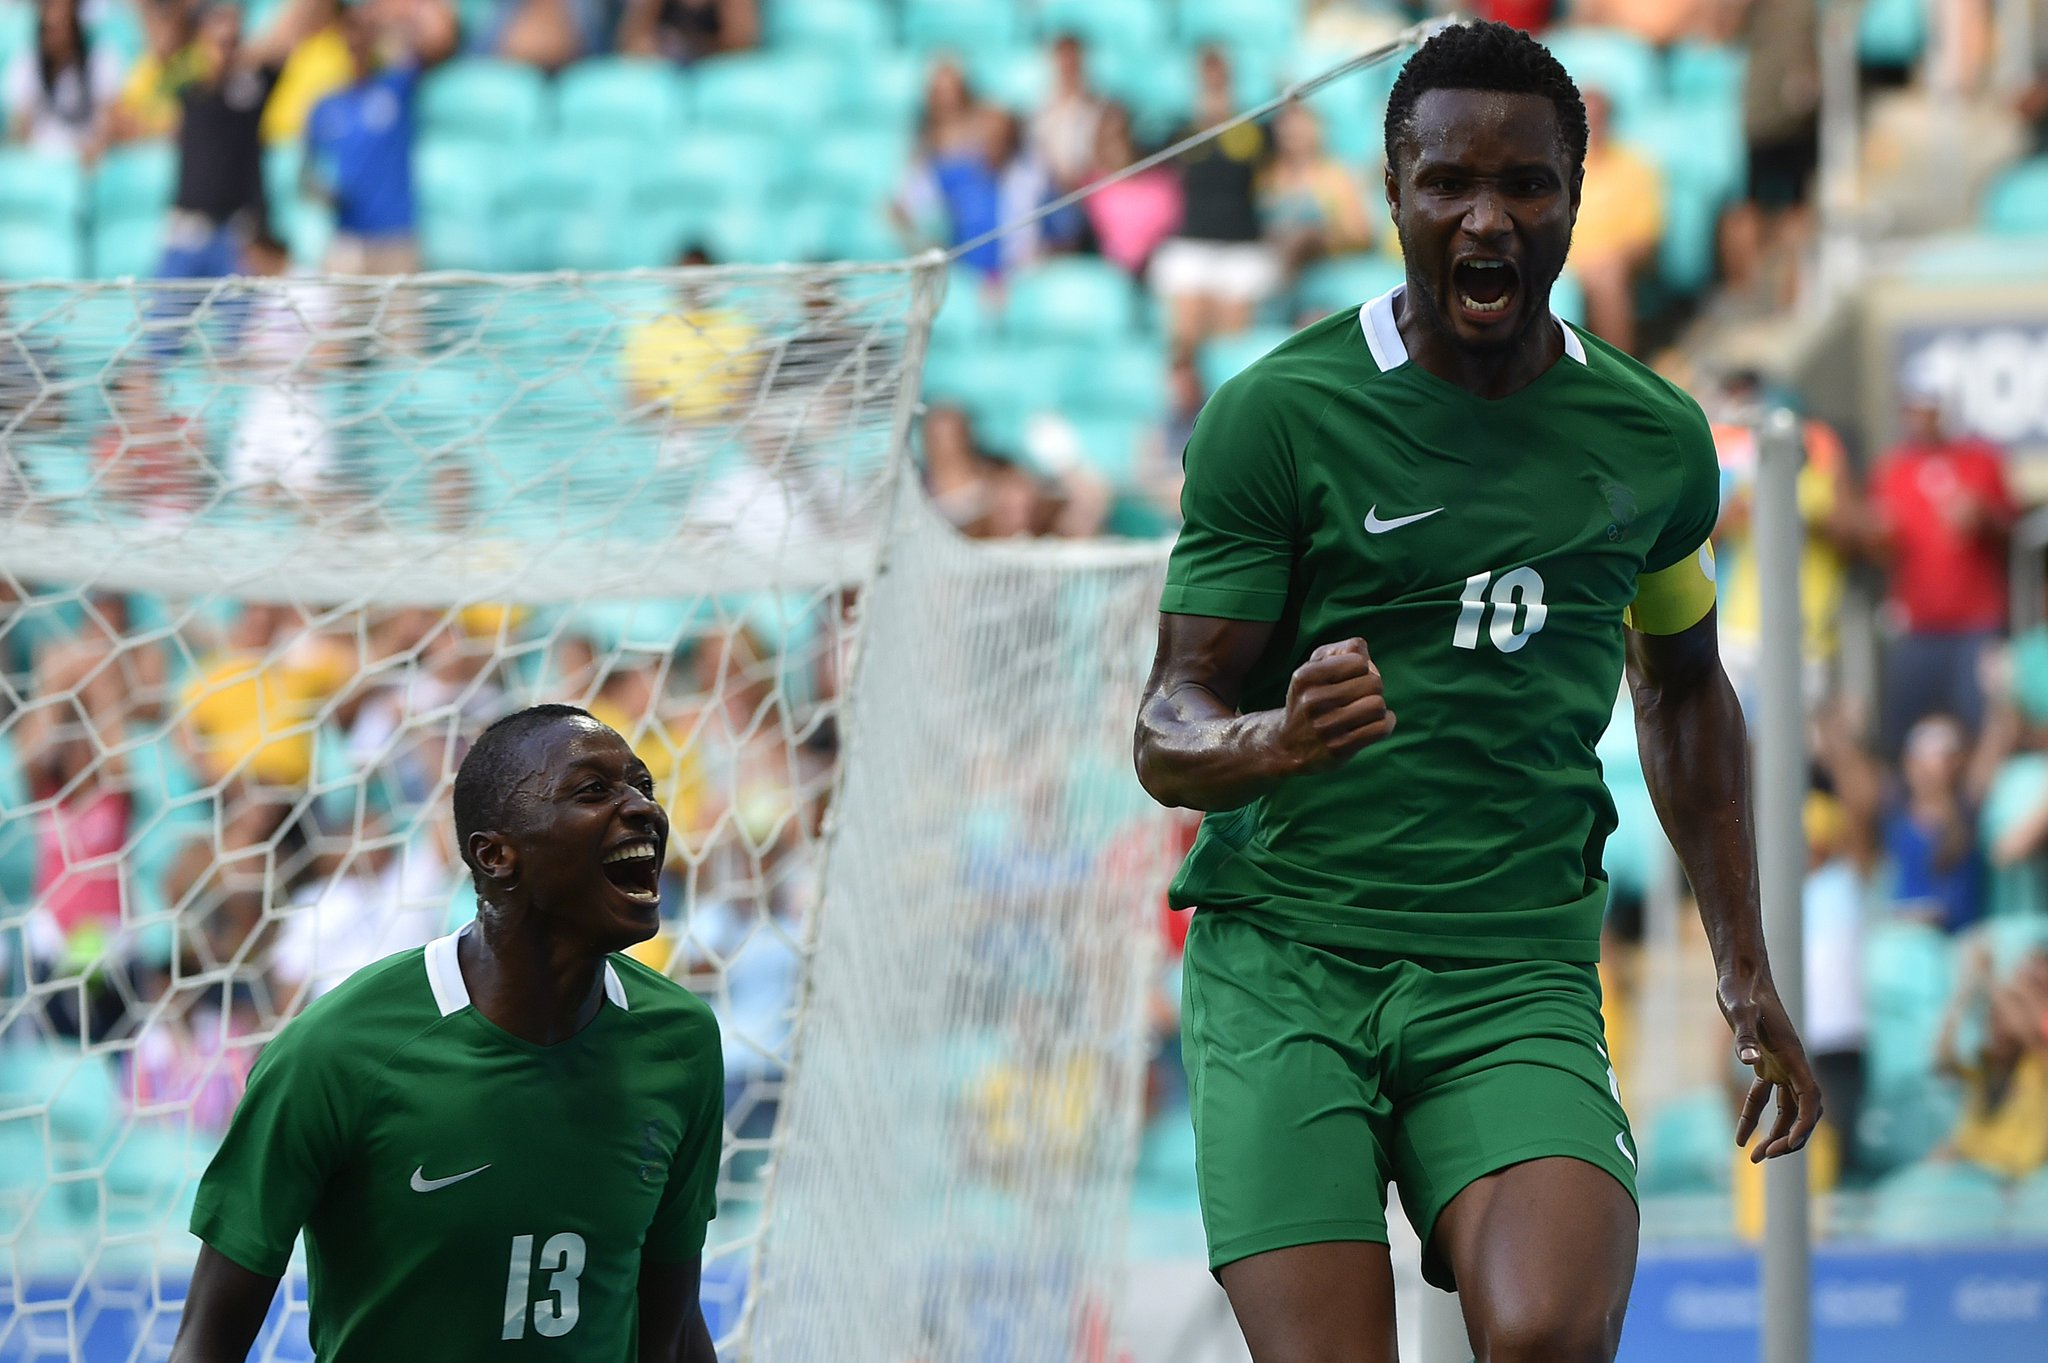 Mikel Scores As Olympic Eagles Outclass Denmark To Reach Semis